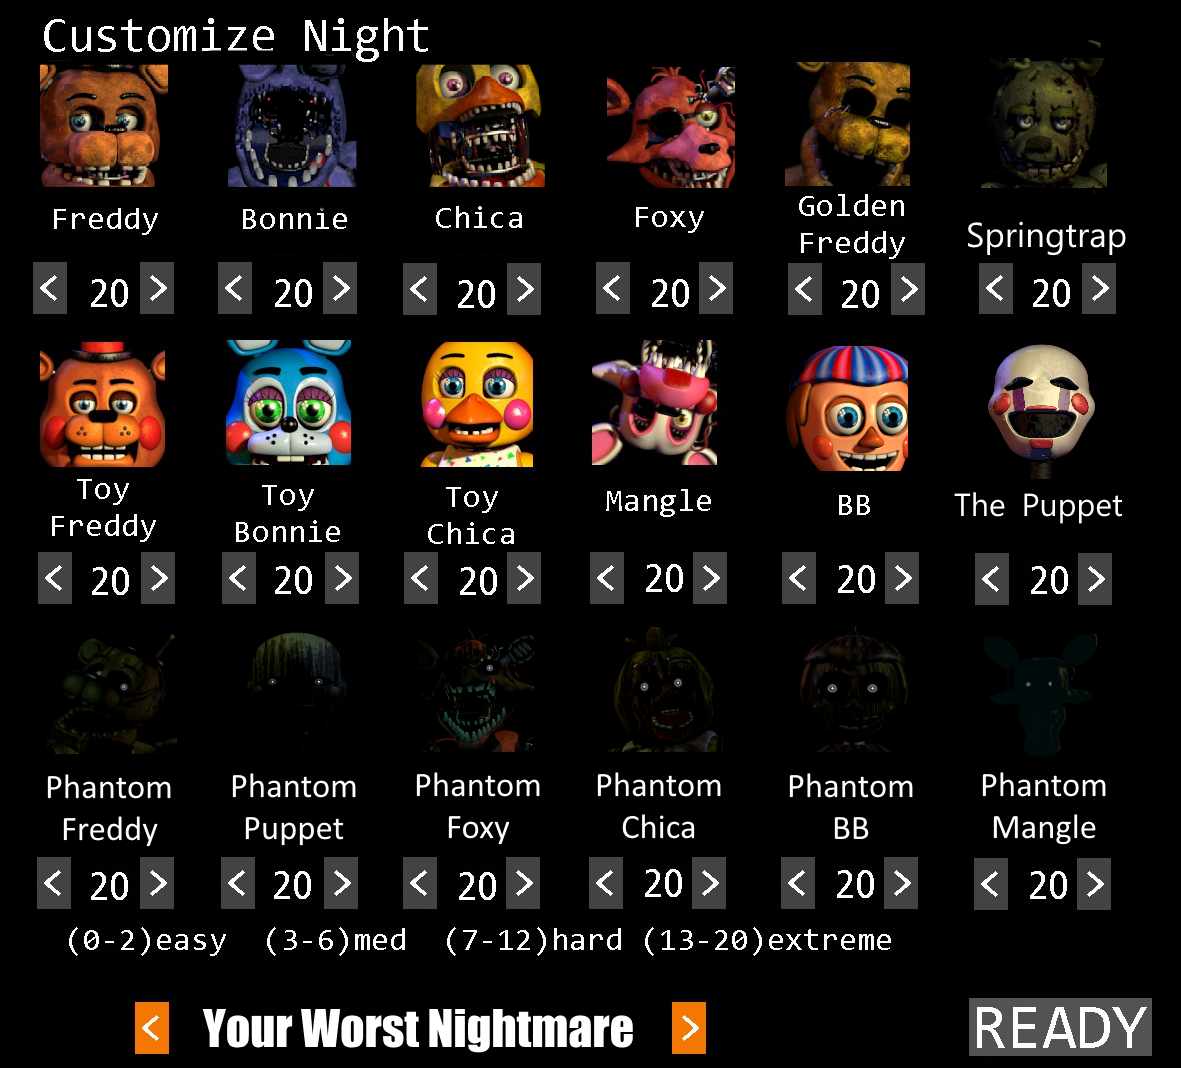 nightmare | Five Nights at Freddy's | Know Your Meme